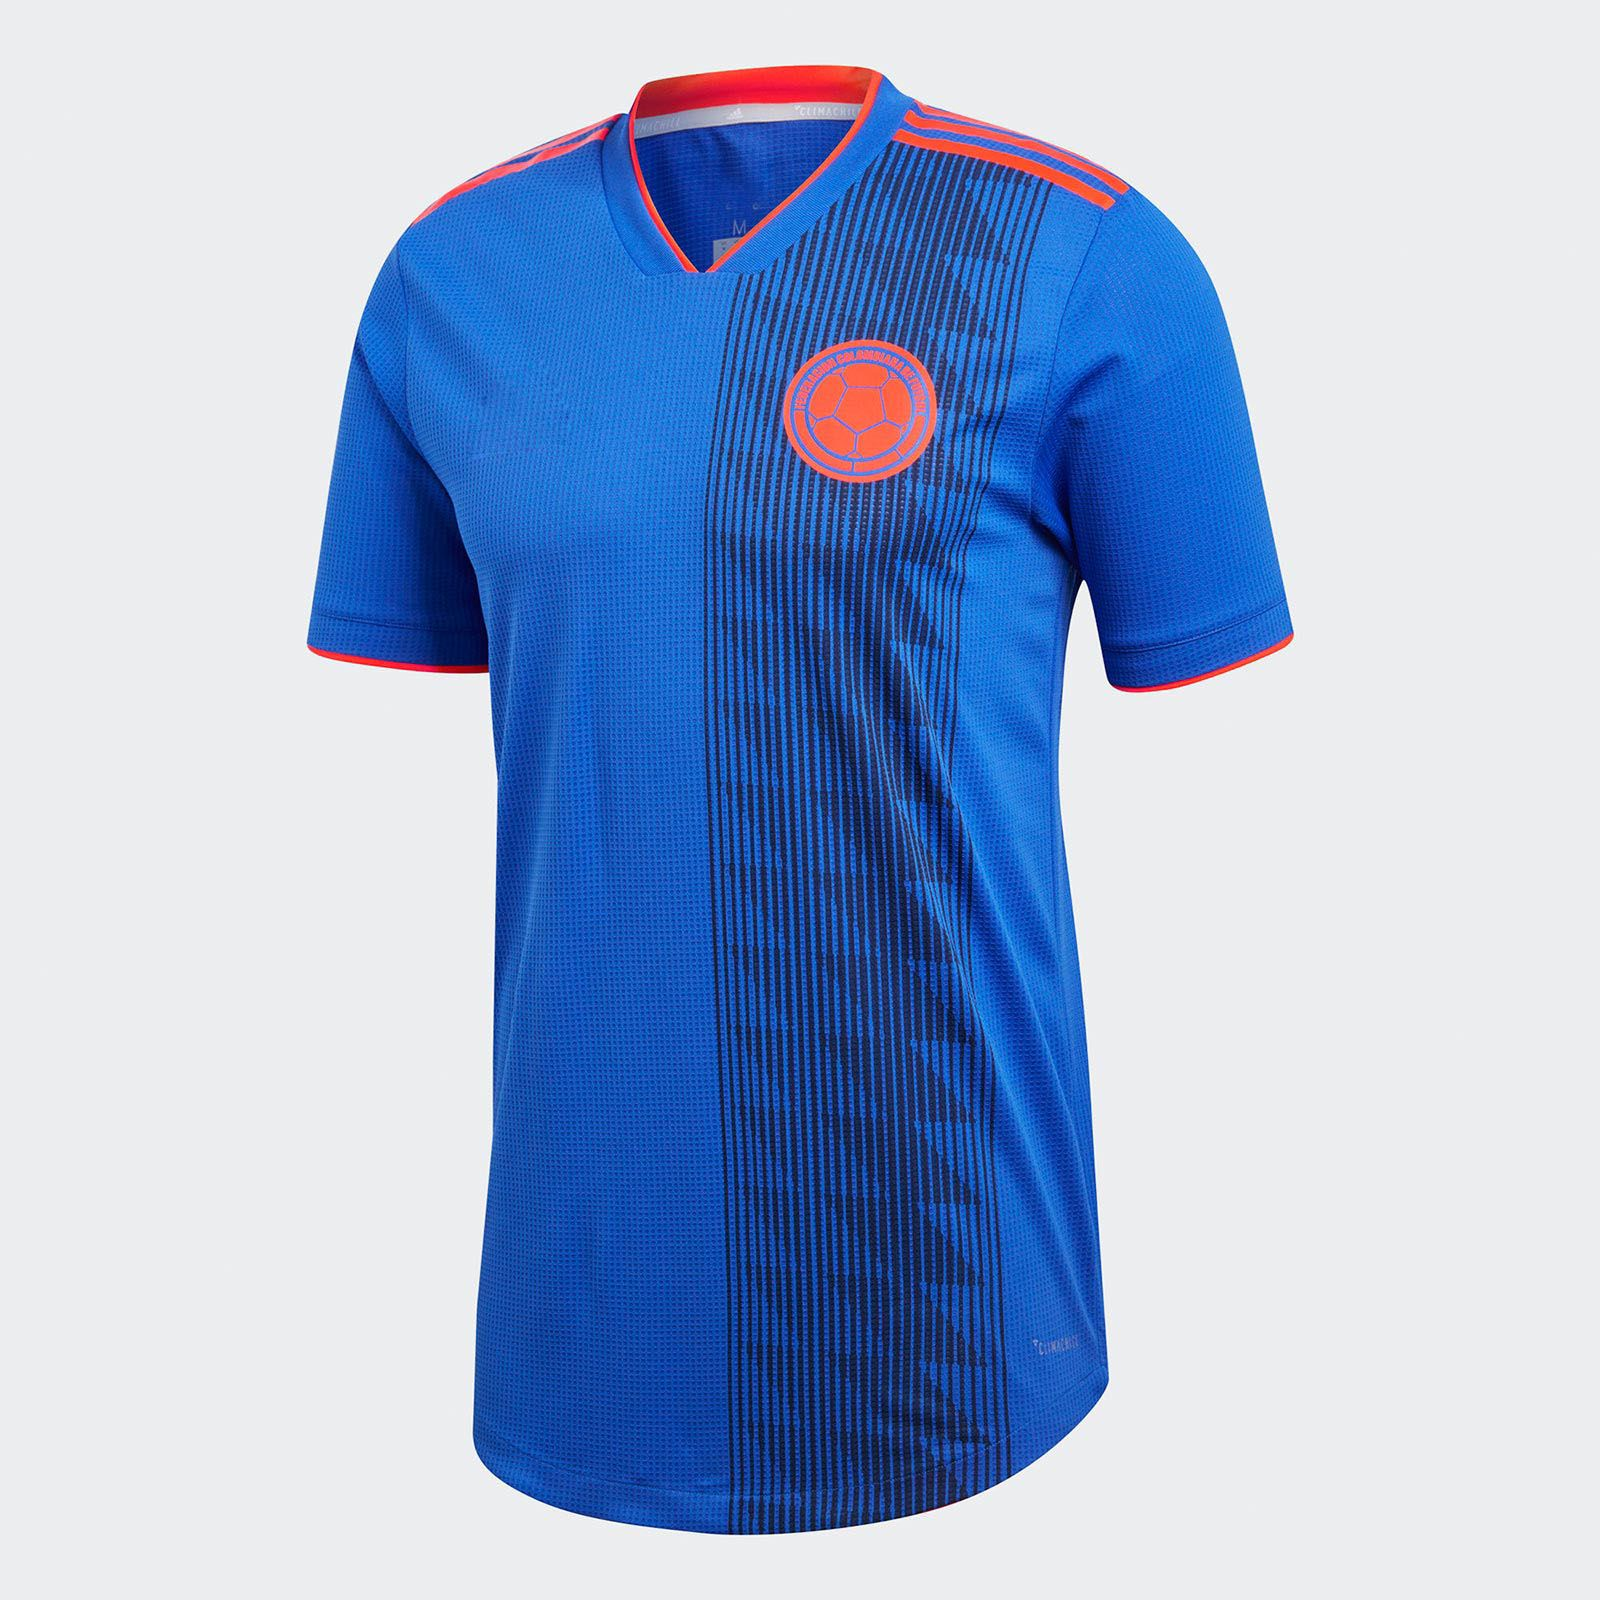 2018 Colombia World Cup Away Jersey Kit  774caac11ec95